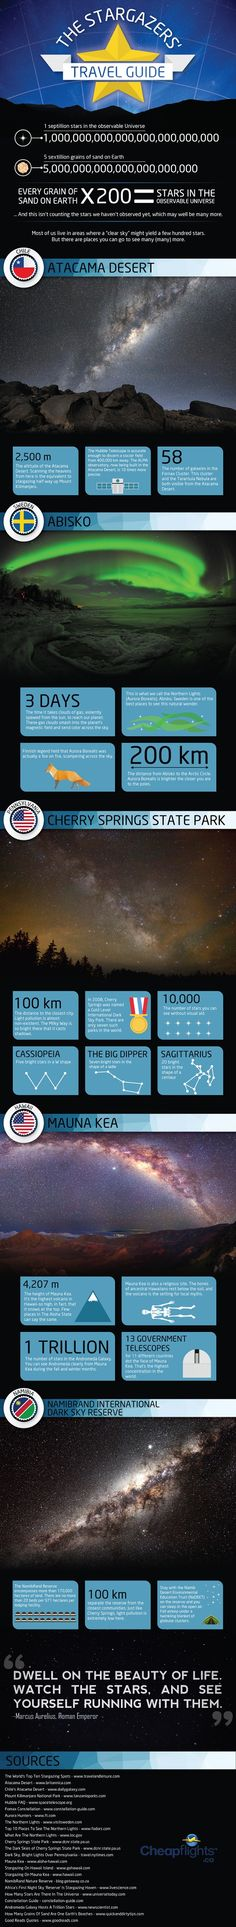 Best Places for Stargazing : From Chile to Hawaii, here are five amazing places in the world for stargazing. Indulge yourself in the enchanting   > http://infographicsmania.com/best-places-for-stargazing/?utm_source=Pinterest&utm_medium=ZAKKAS&utm_campaign=SNAP